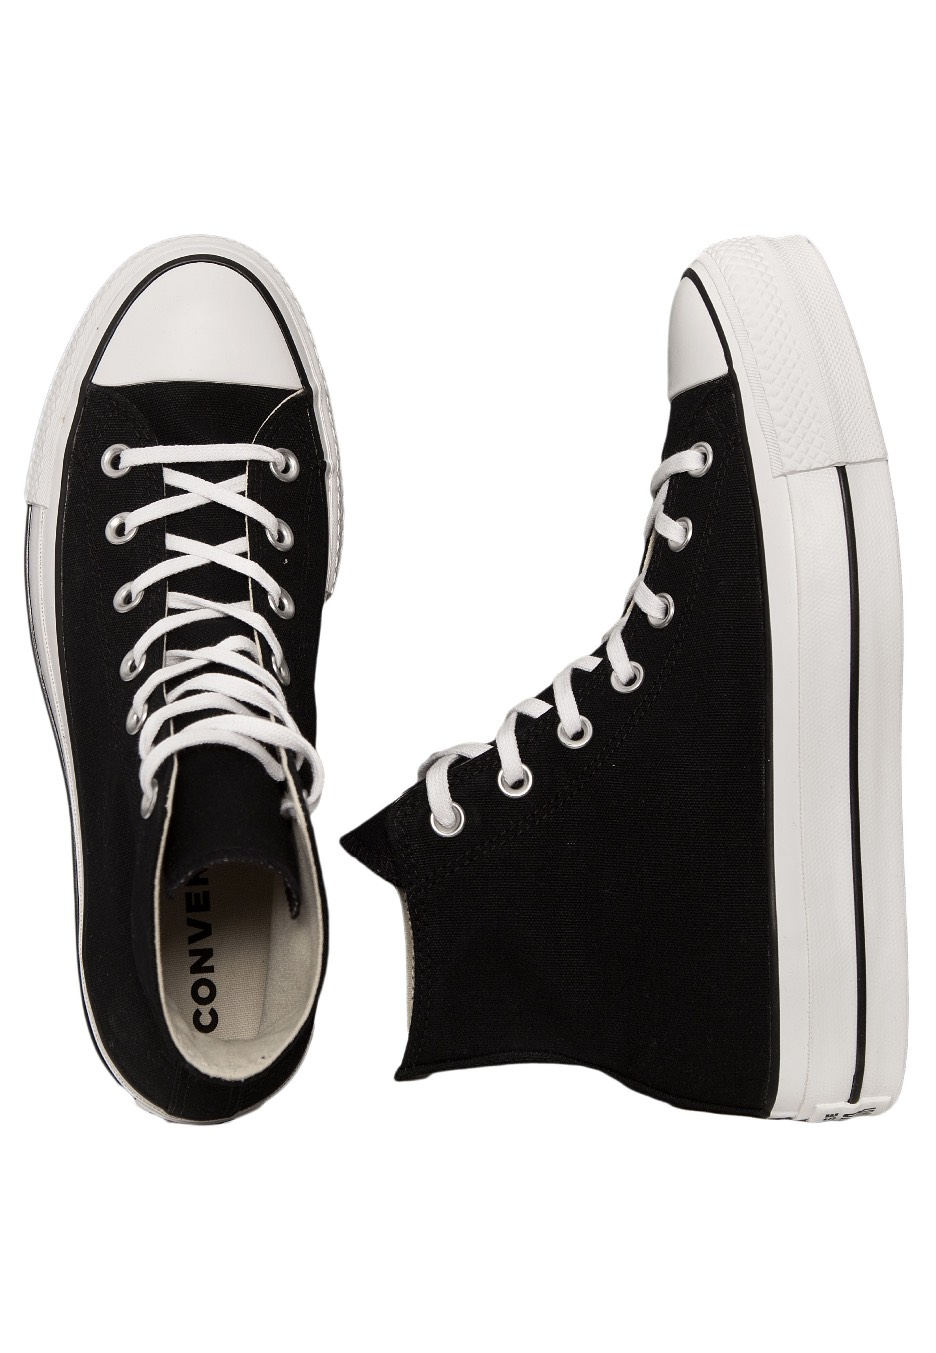 Converse Chuck Taylor All Star Lift Hi BlackWhiteWhiteBlack Girl Shoes